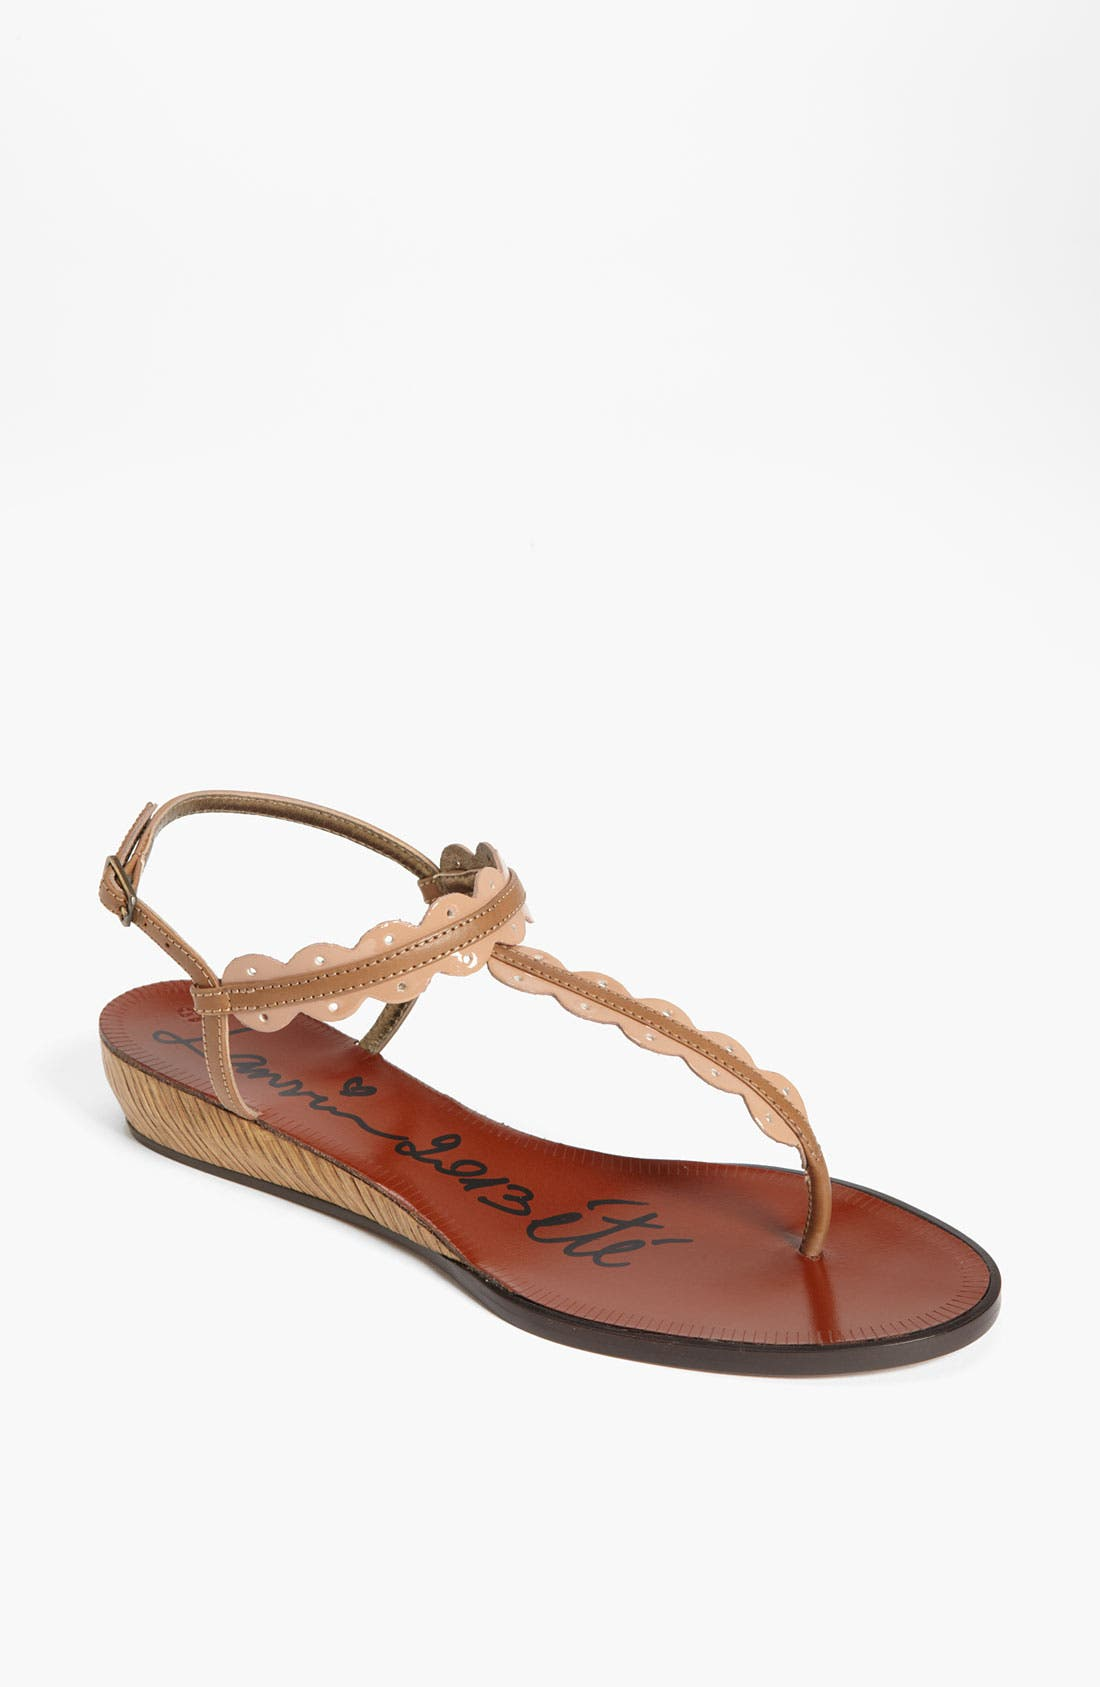 Alternate Image 1 Selected - Lanvin Mini Wedge Thong Sandal